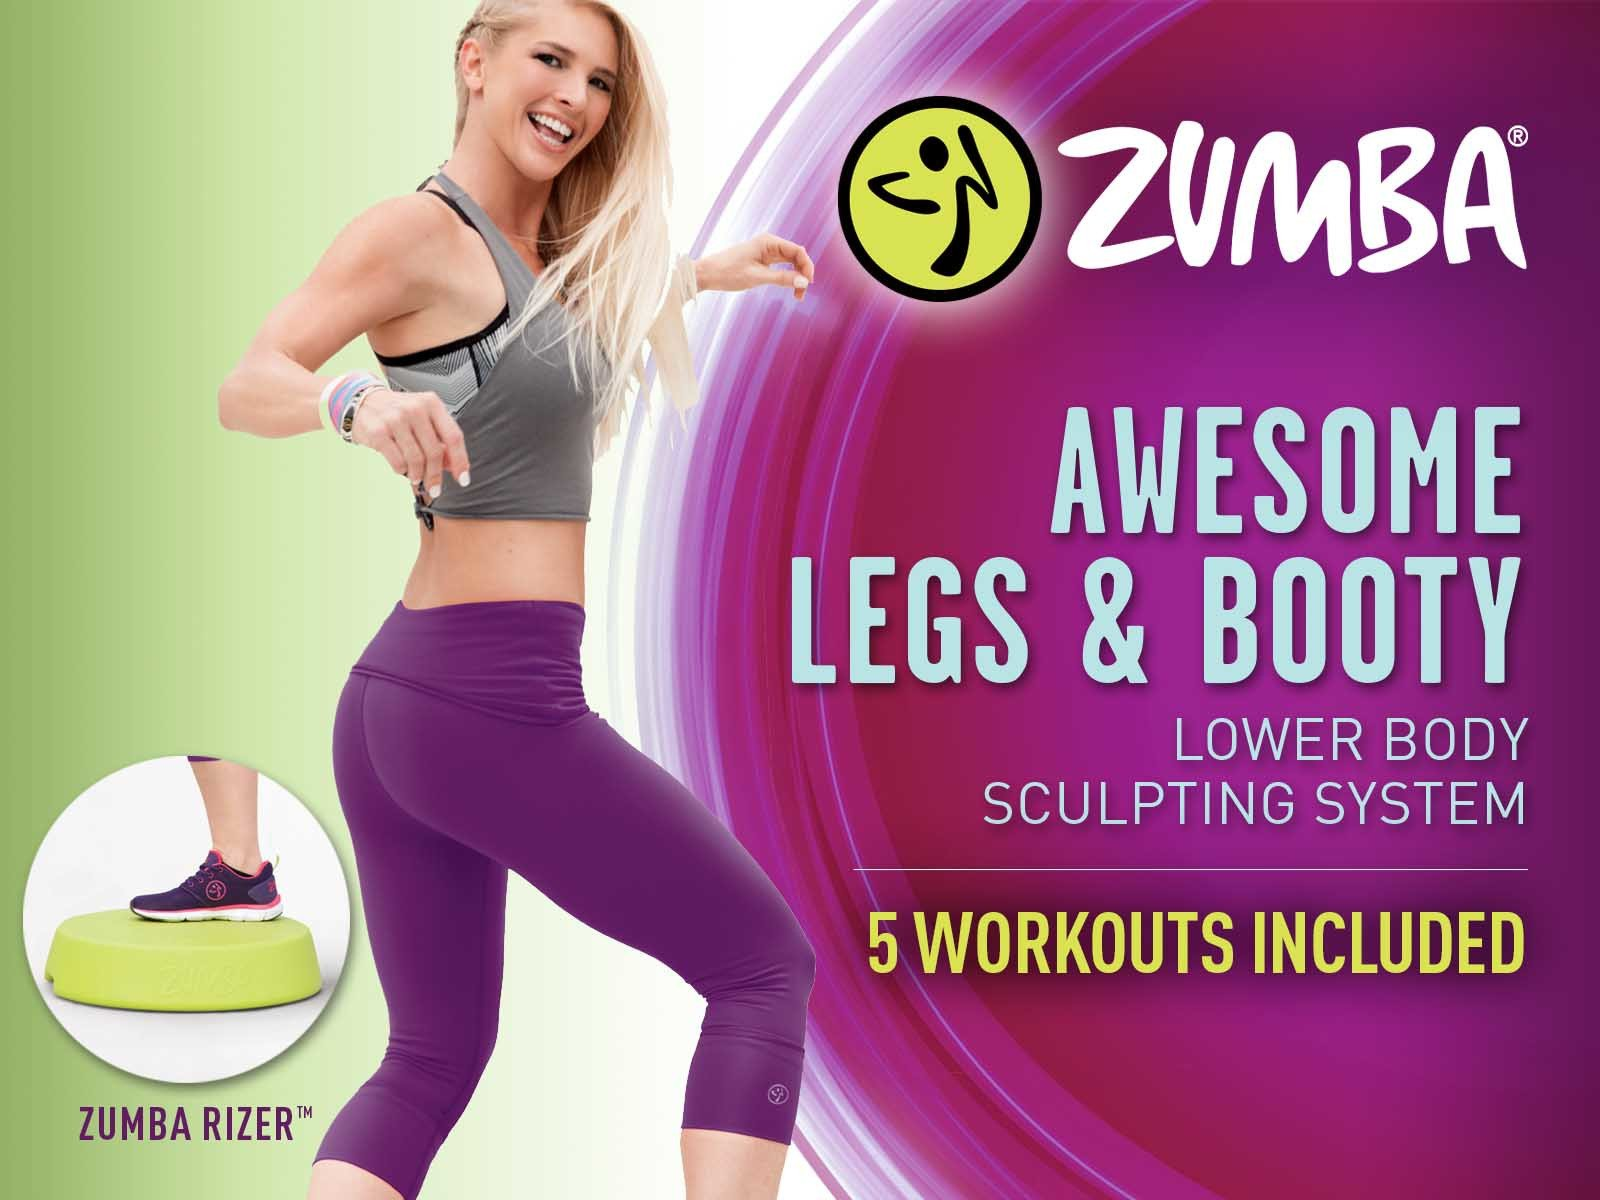 Zumba Awesome Legs & Booty System - Season 1